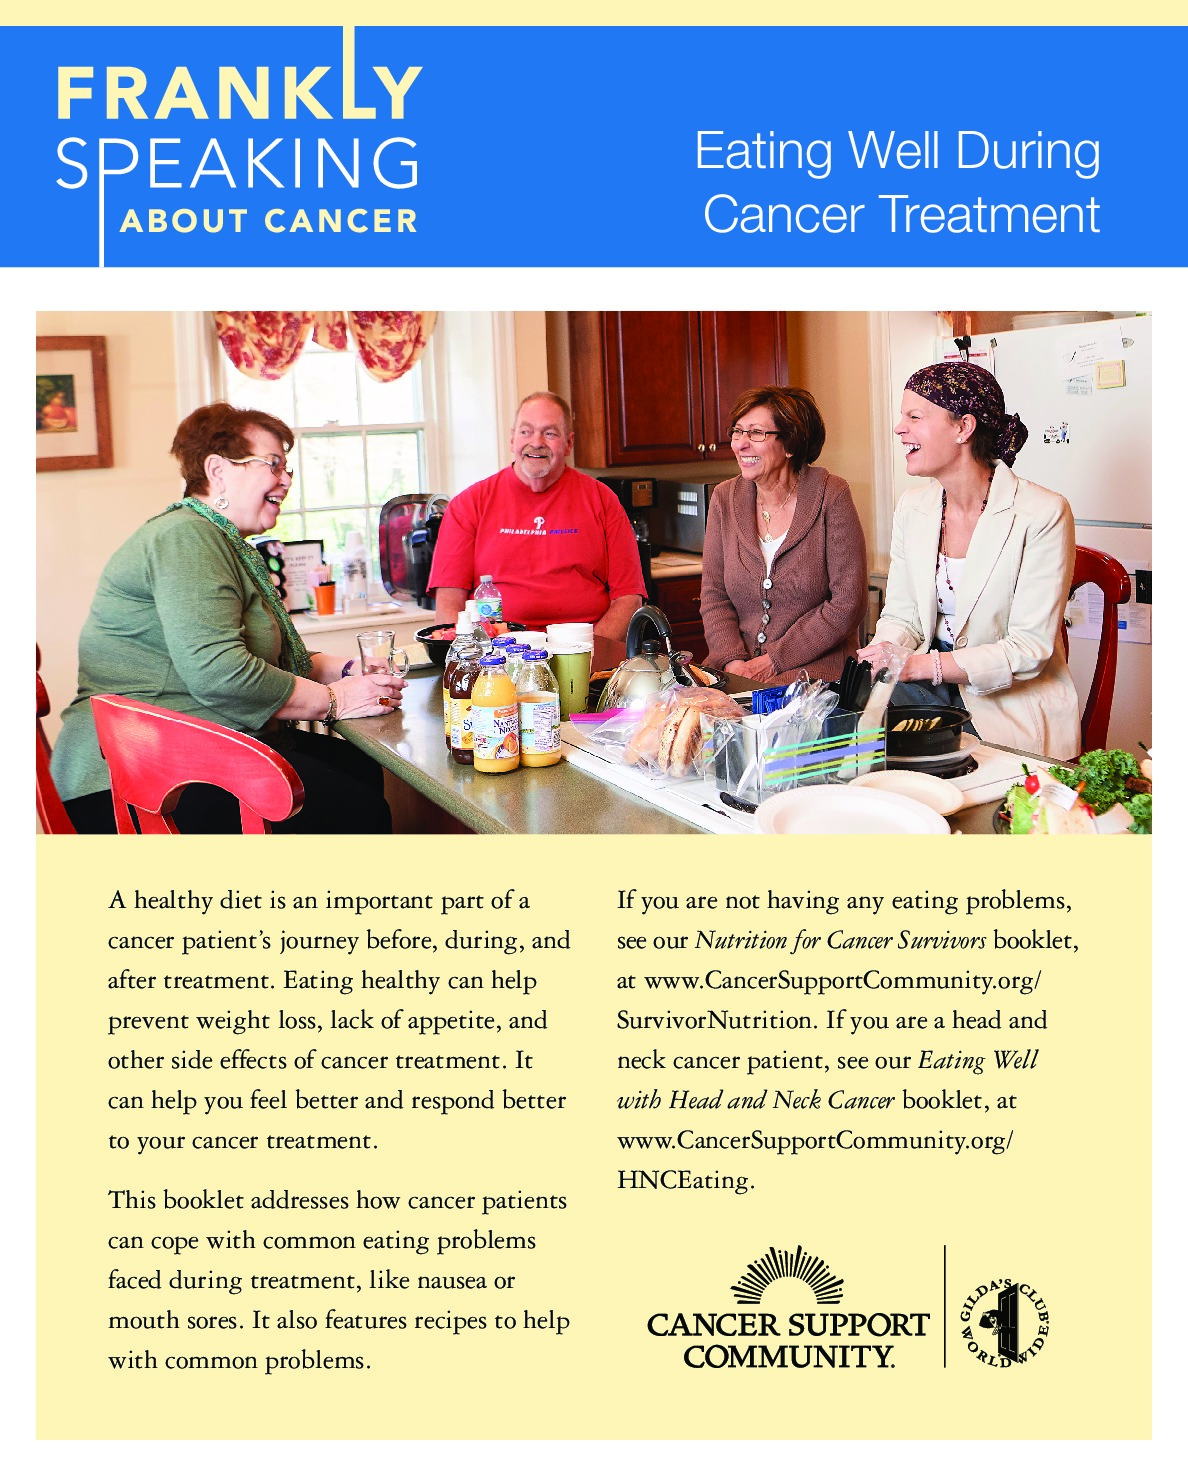 Frankly Speaking About Cancer: Eating Well During Cancer Treatment